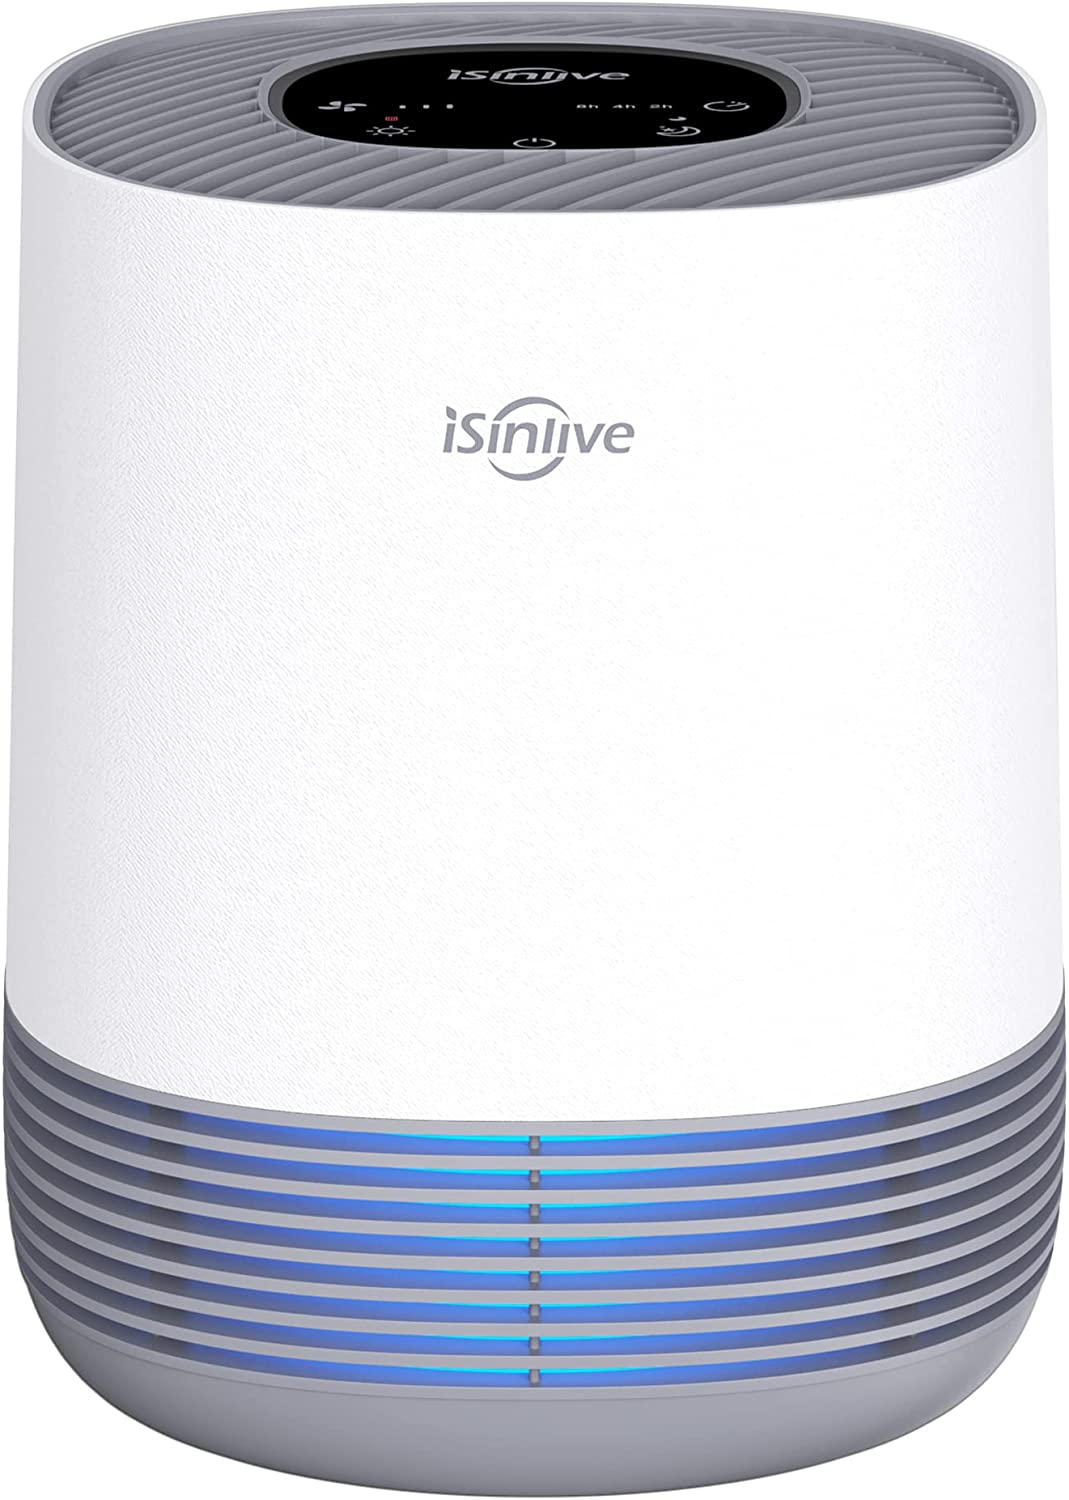 Isinlive H13 HEPA Air Purifier $37.99 Coupon